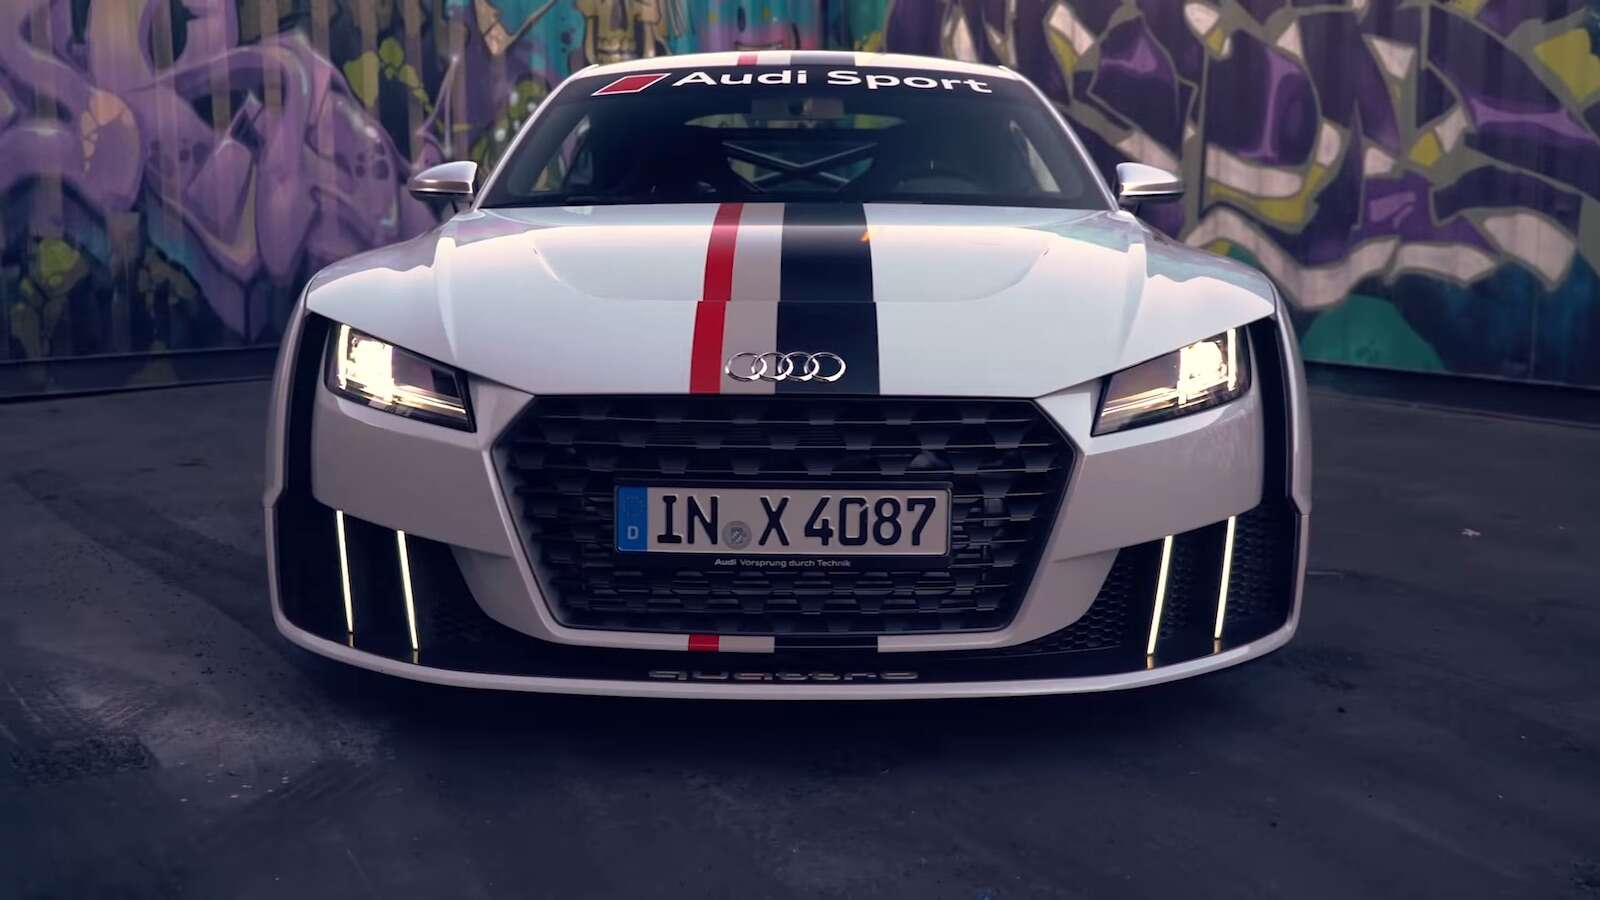 The 600 horsepower audi tt clubsport turbo concept visits for Garage audi tours